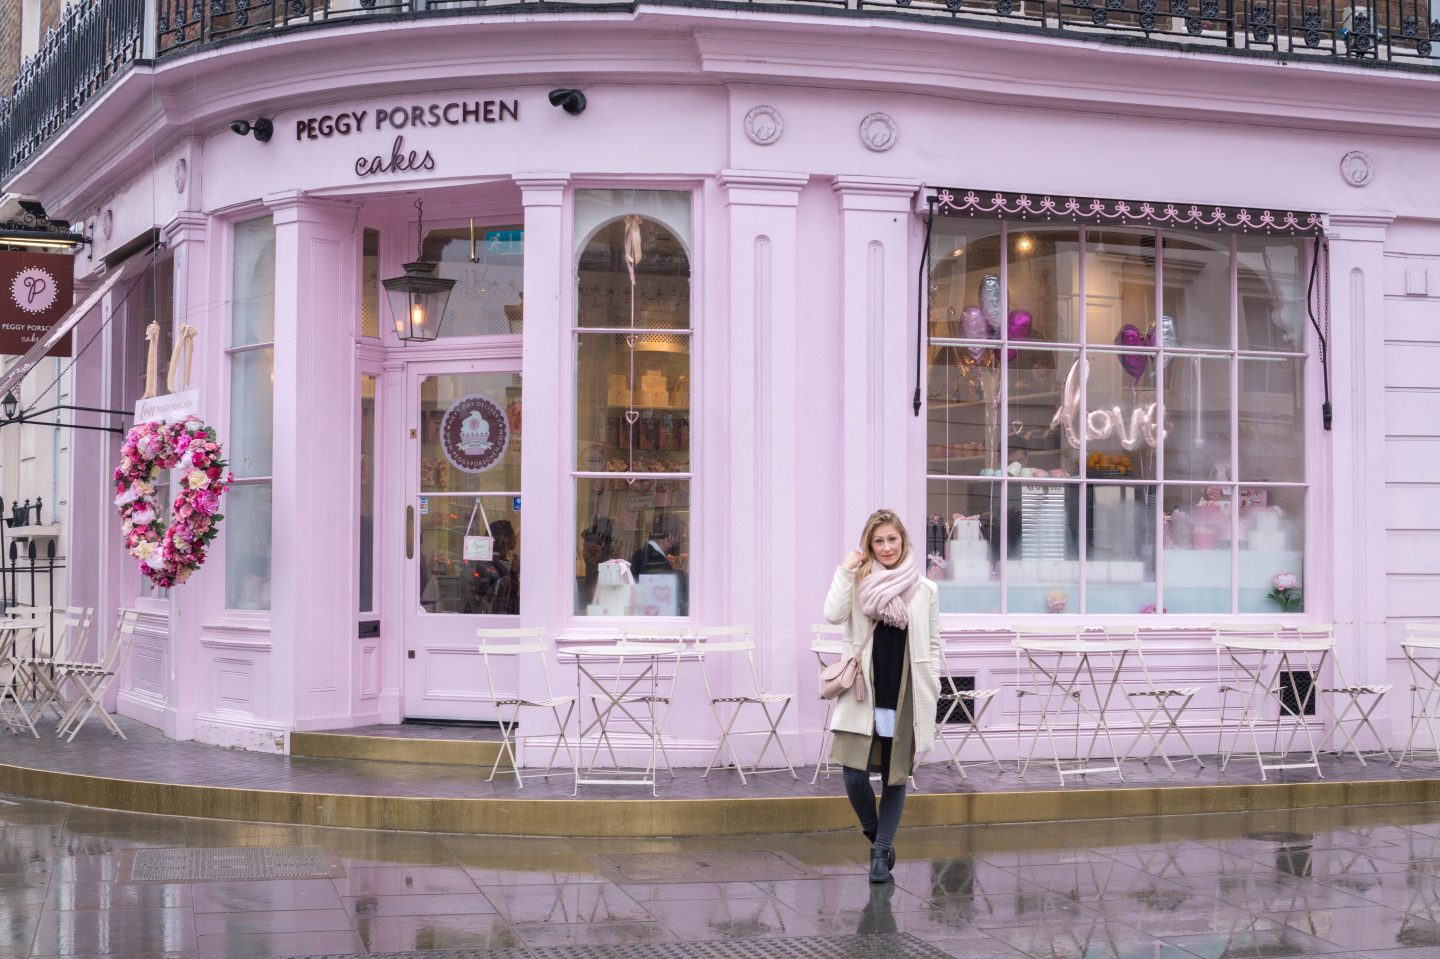 Peggy Porschen, Cupcakes & Outfit | London Love #3